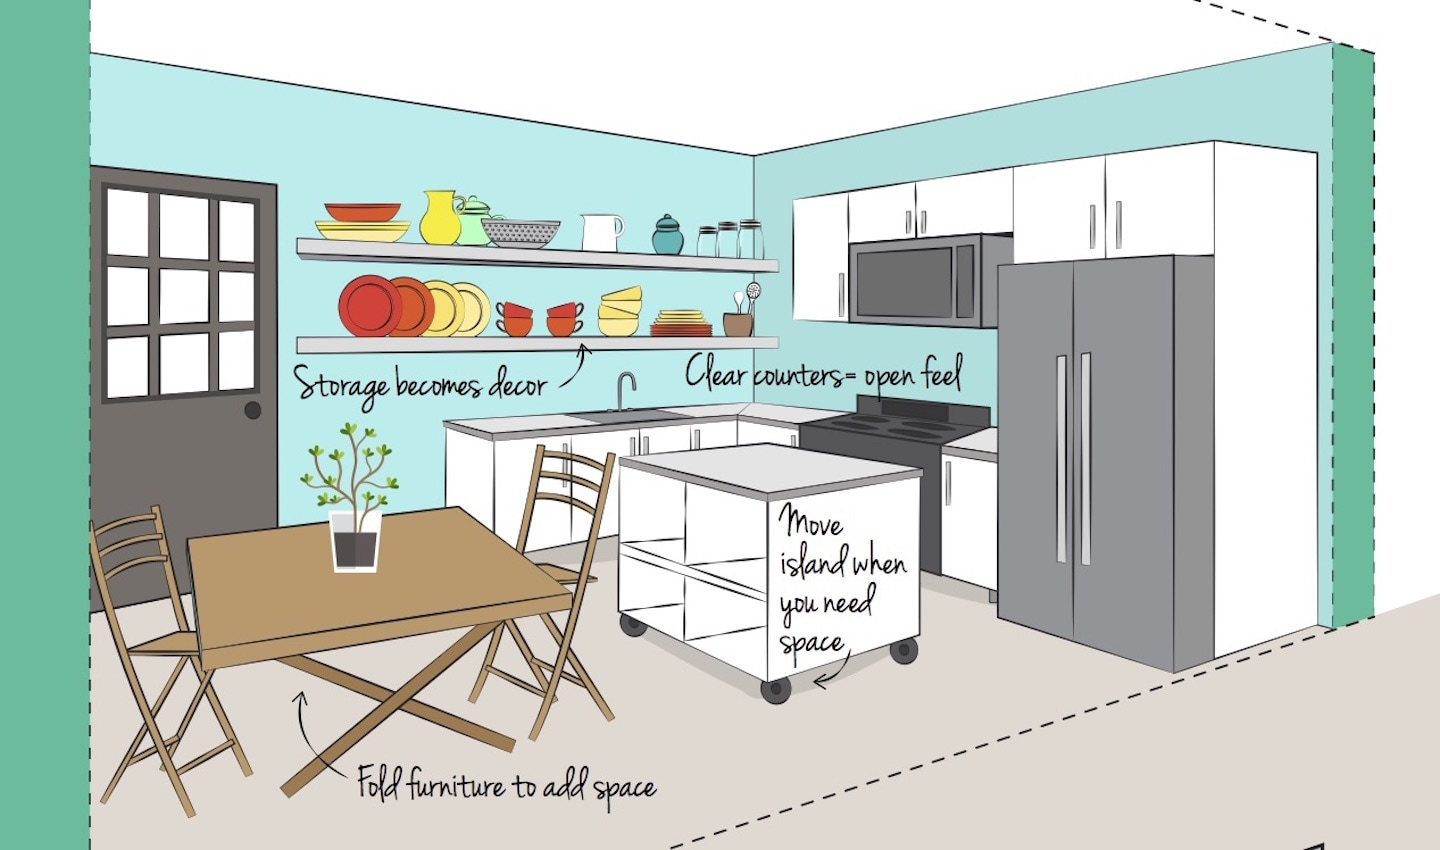 Small Kitchen illustration with design tips included.